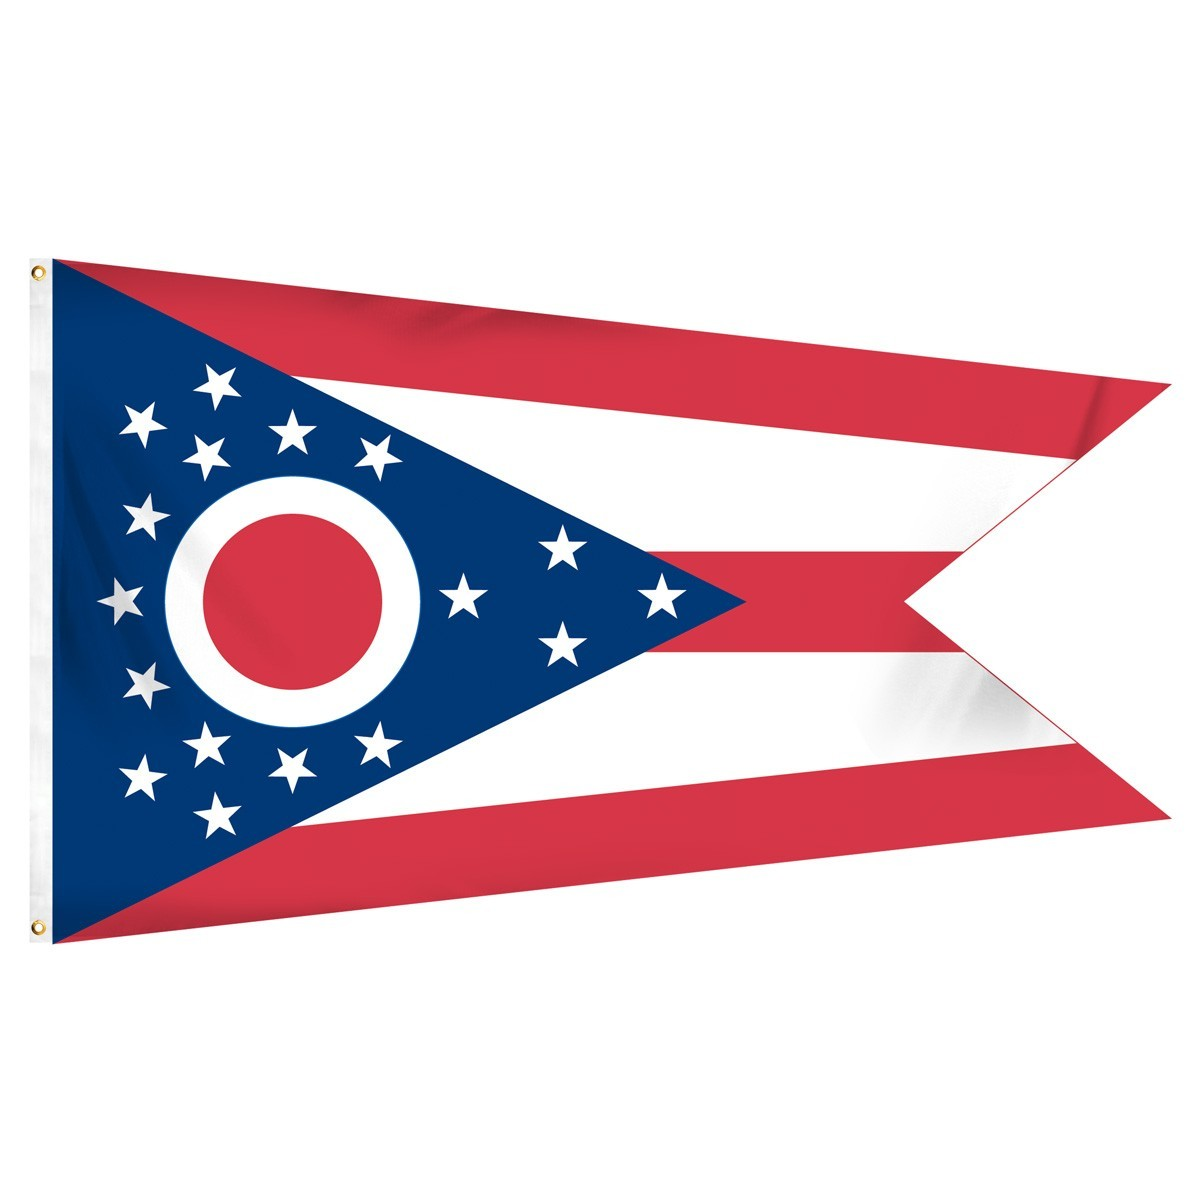 Ohio stick classroom flags for sale